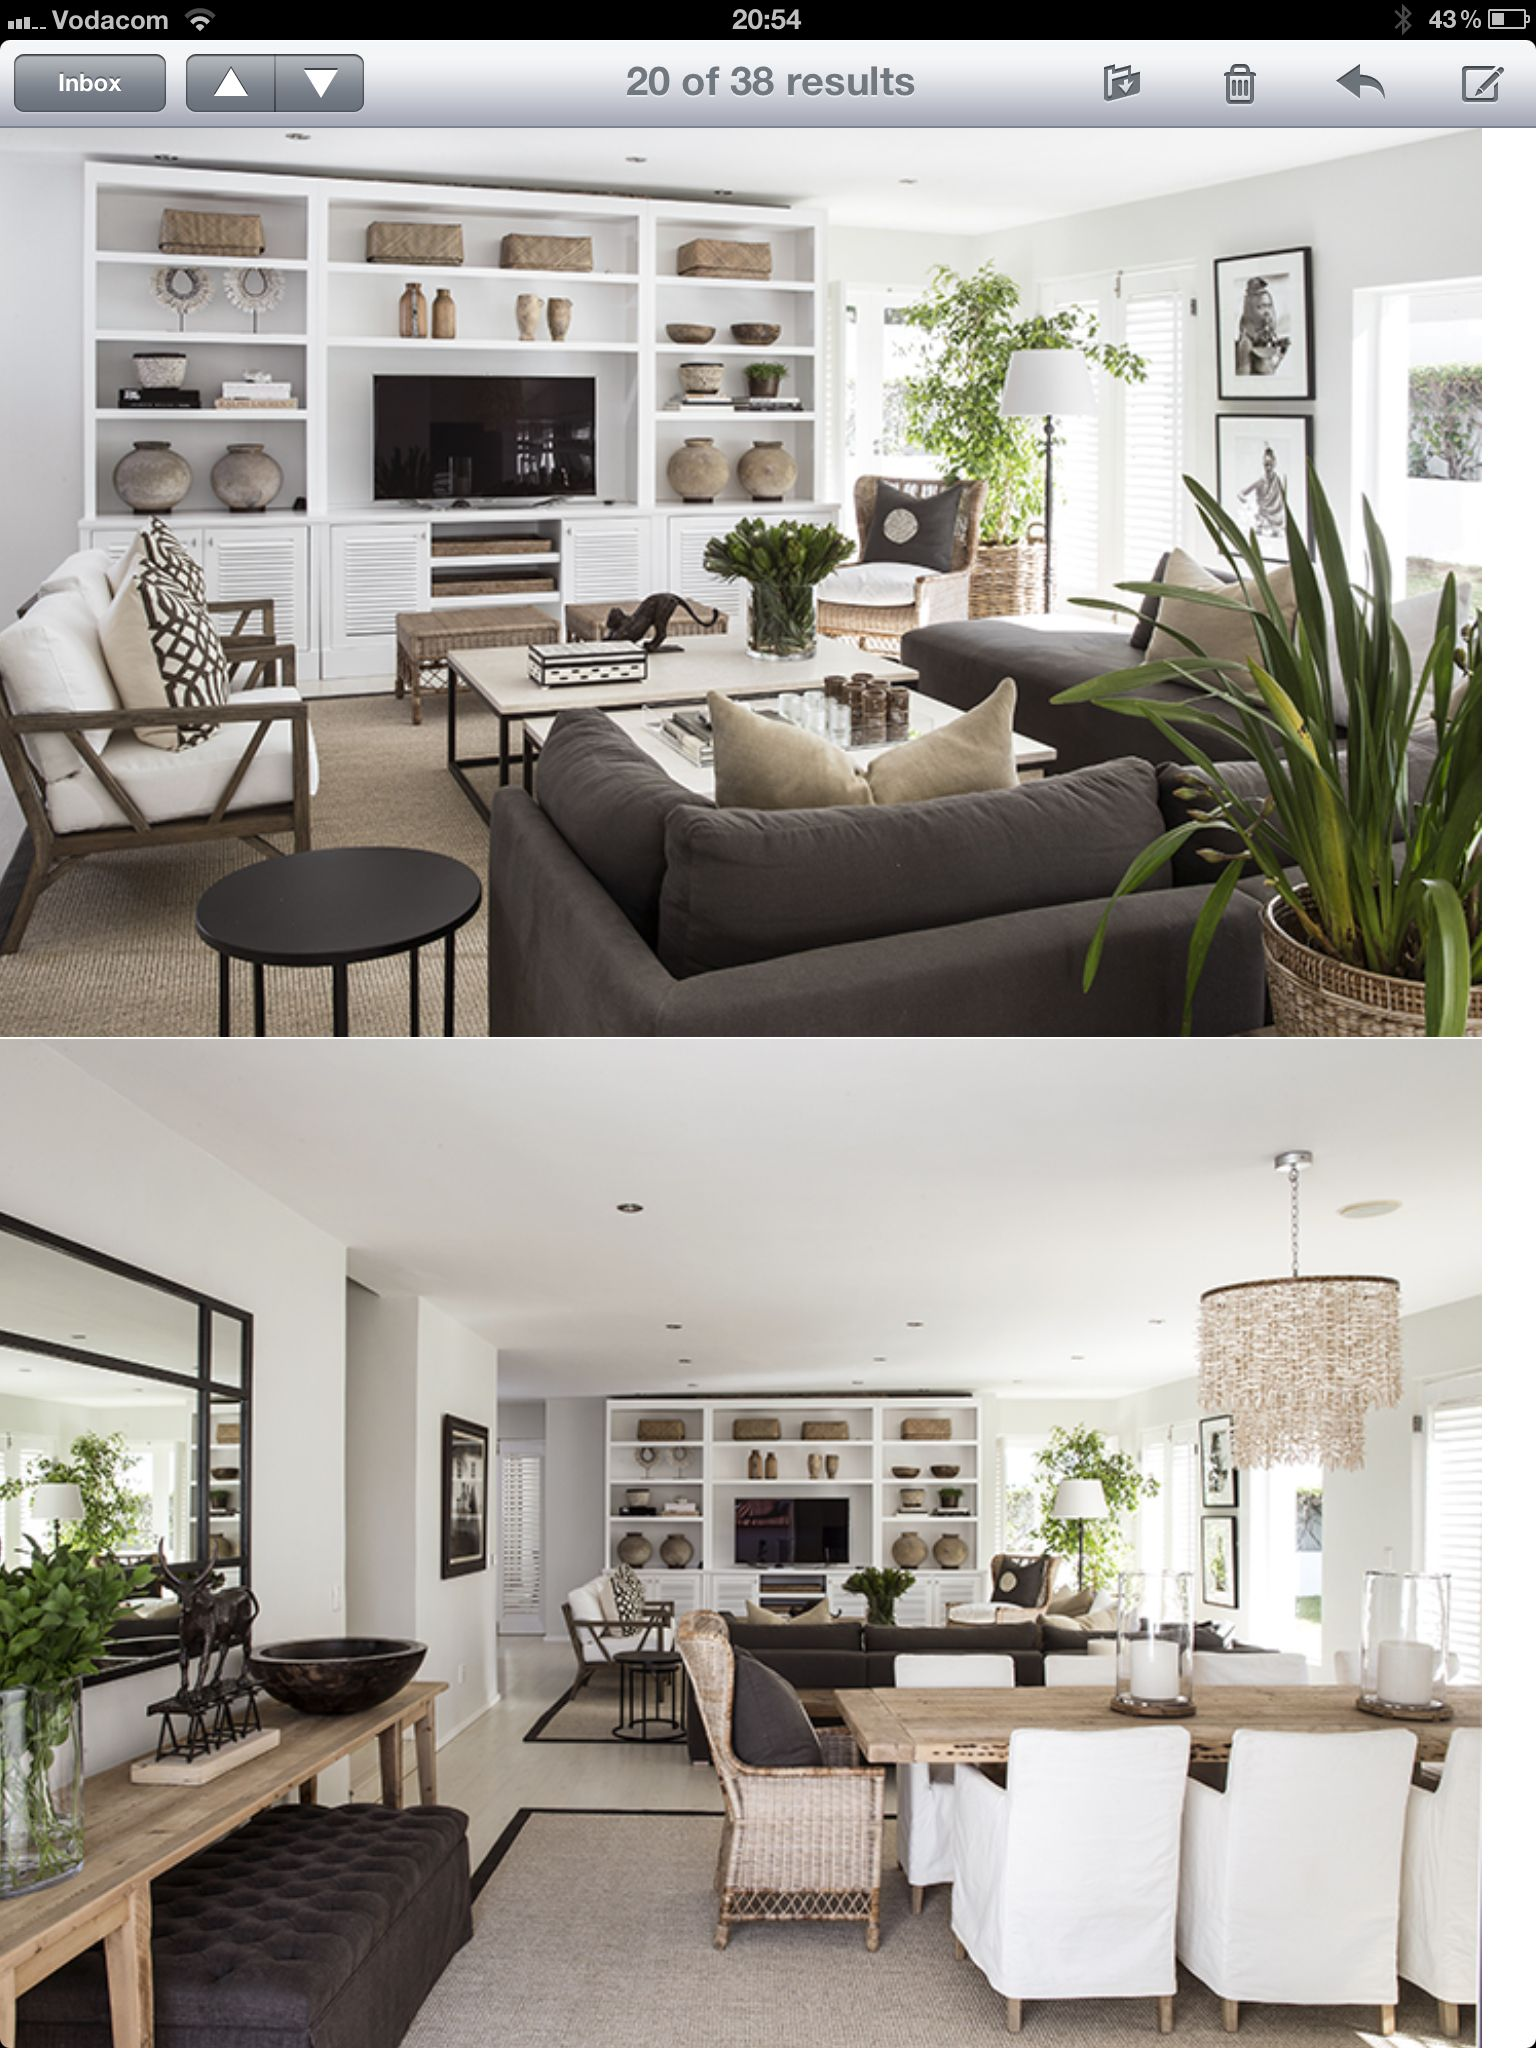 Interior Designed Living Rooms Fascinating Yvonne O'brien Interior Designliving Room Dining Room White Review